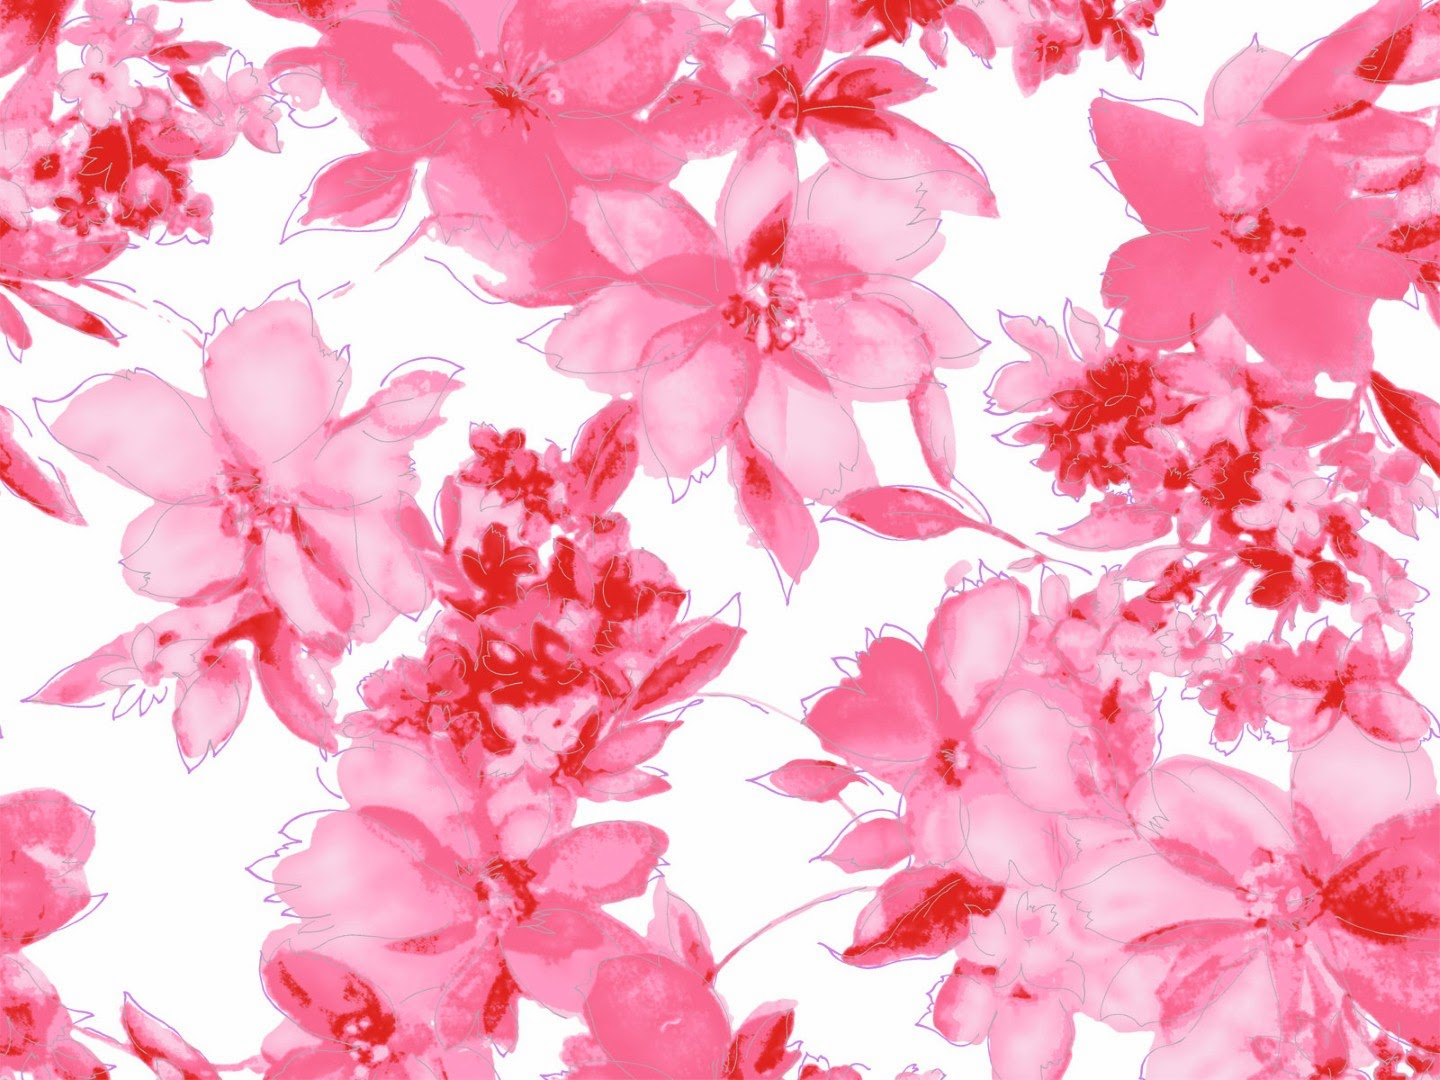 Hot pink flower background hd wallpapers wish to flowers is definitely your look at pink flowers create the backdrop of ones personal computer below i give an assortment of pink flowers to mightylinksfo